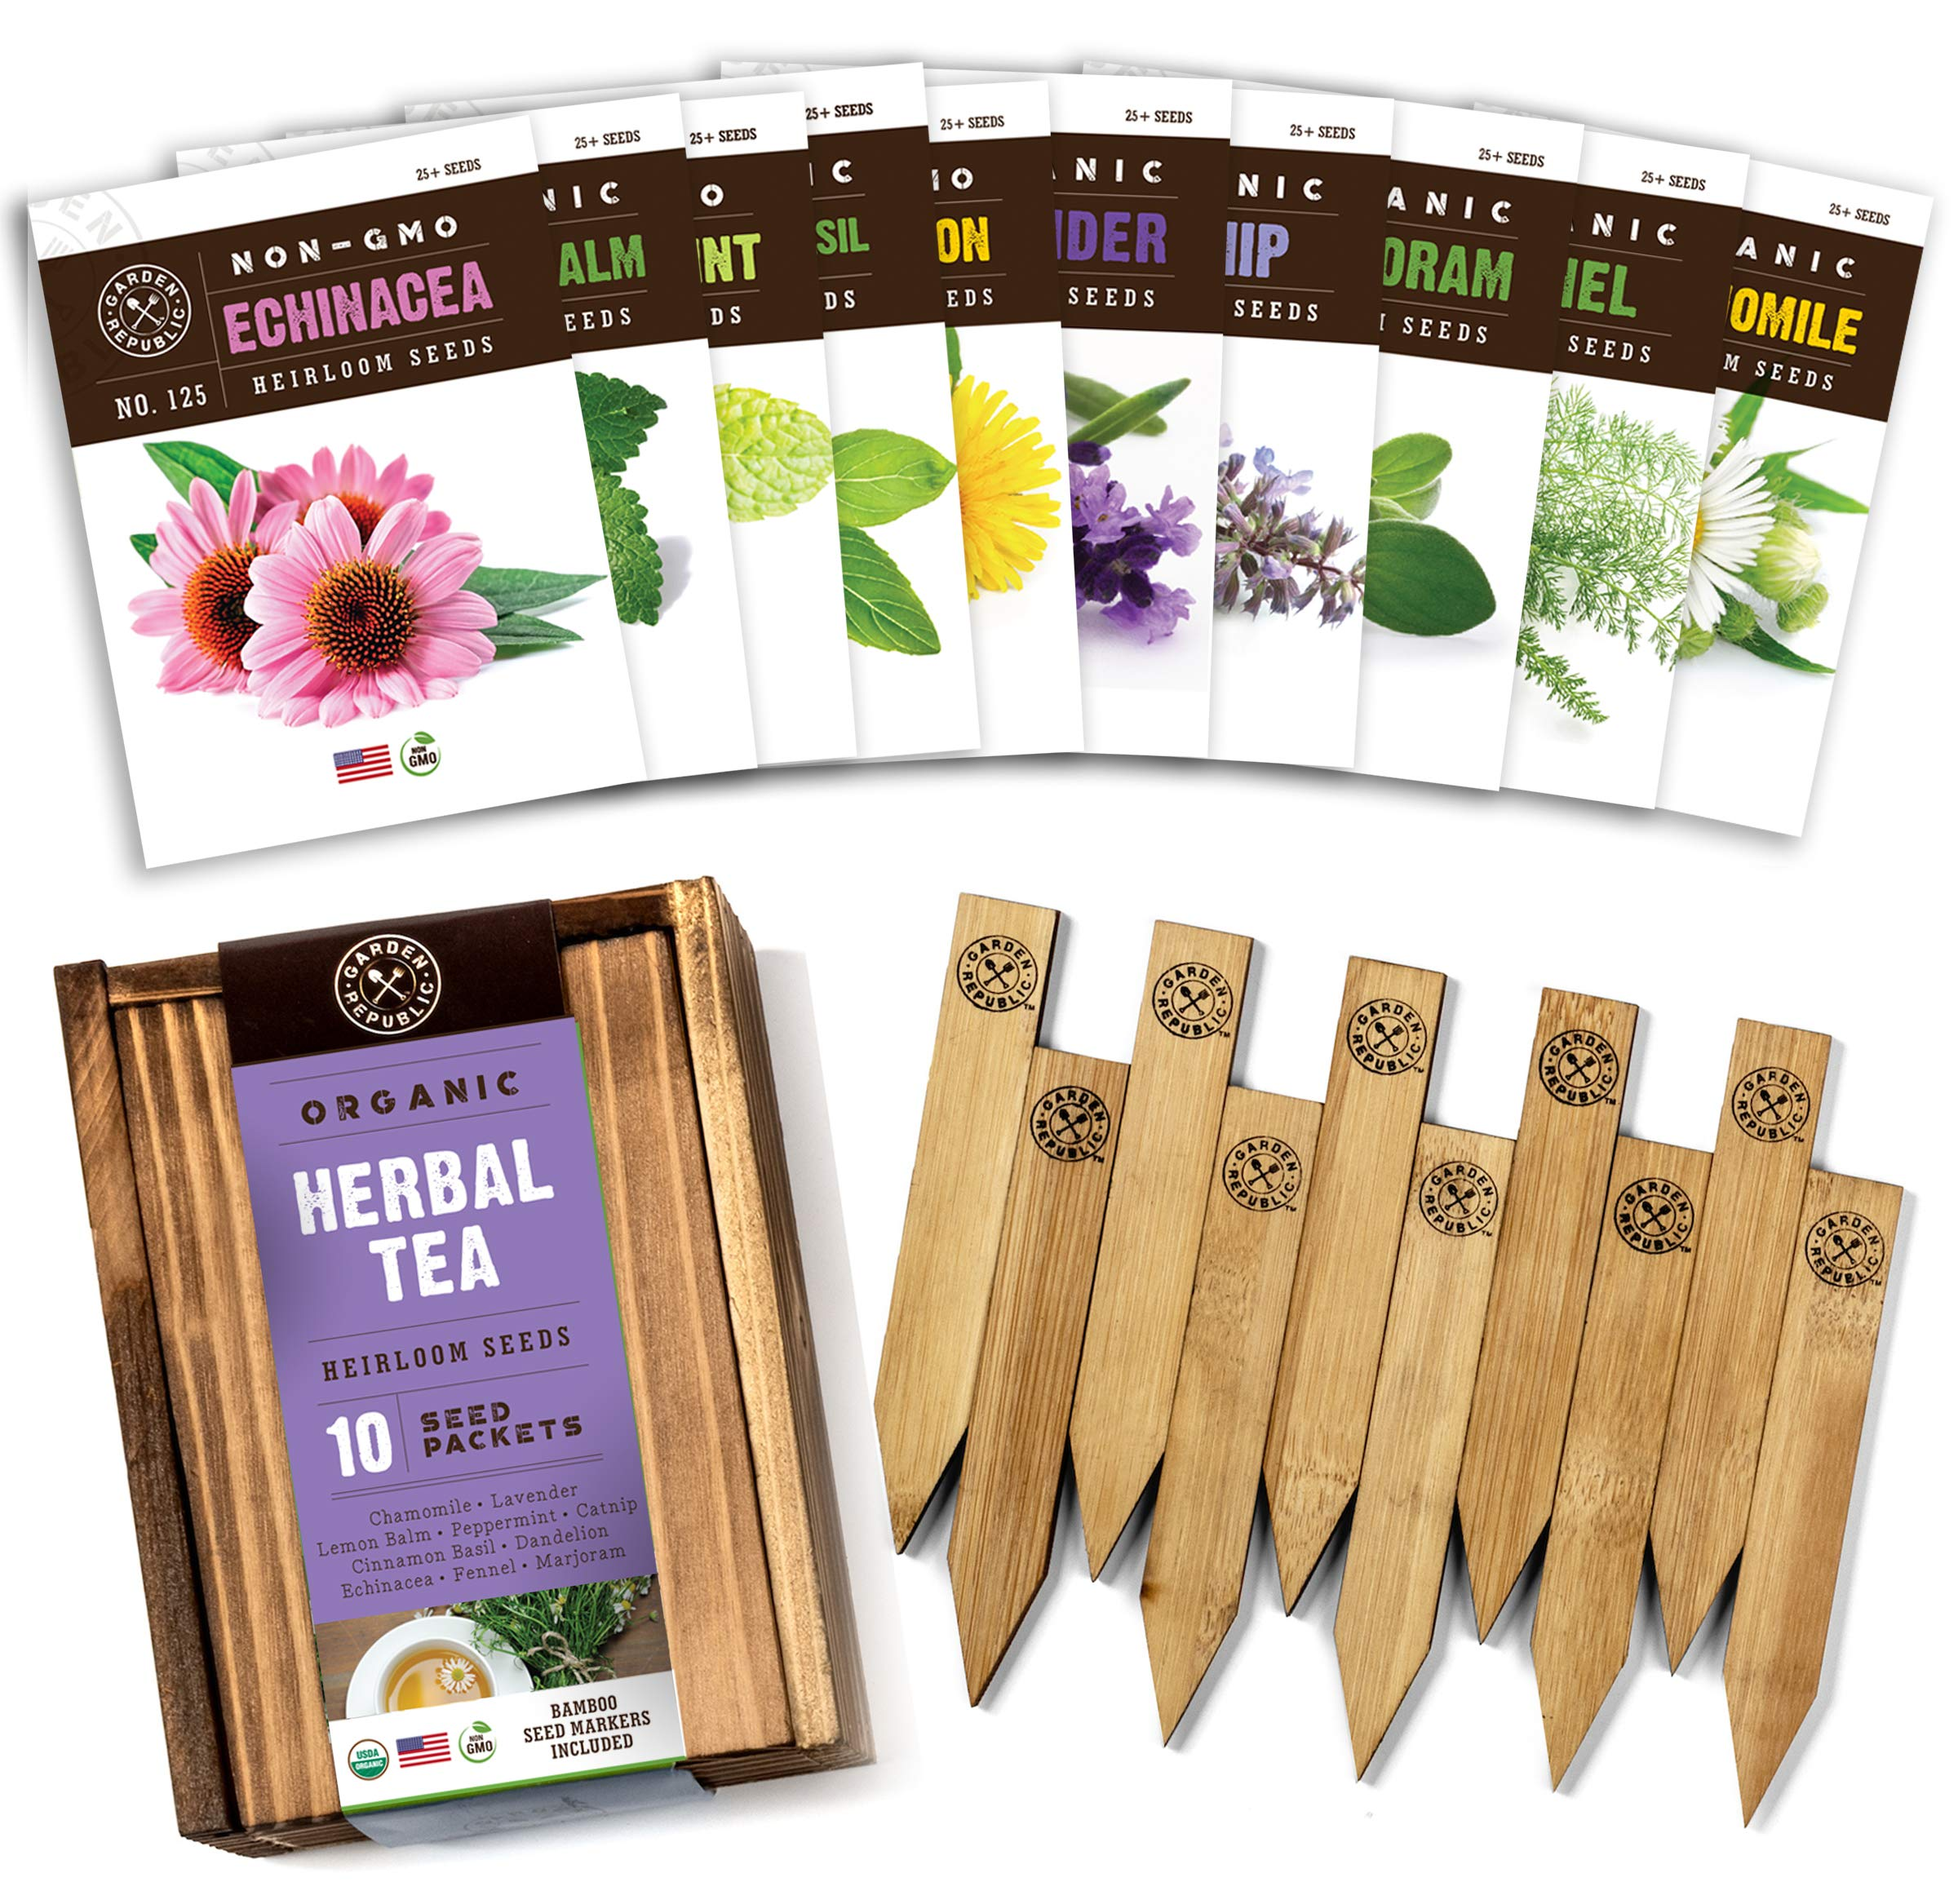 Herb Garden Seeds for Planting - 10 Medicinal Herbs Seed Packets USDA Organic Non GMO, Wood Gift Box Plant Markers eBook - Herbal Tea Gifts for Tea Lovers, Herb Growing Kit Indoor Garden Starter Kit by · GARDEN REPUBLIC ·